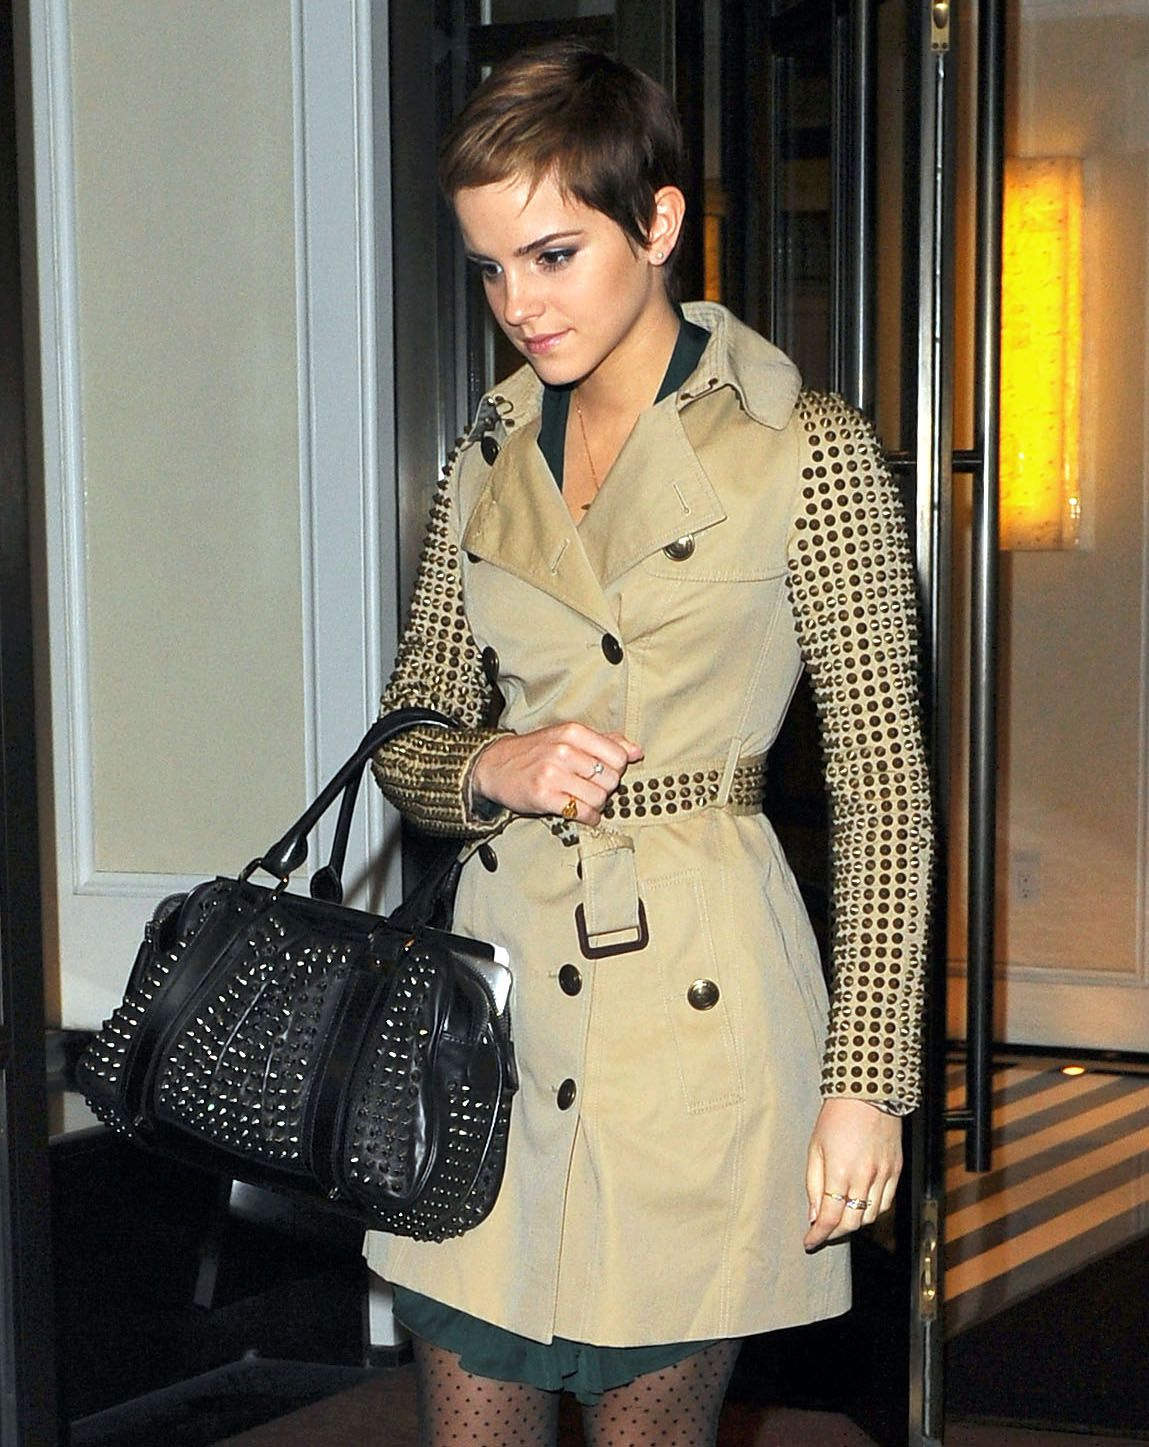 Trench coats at Burberry outlets? - PurseForum